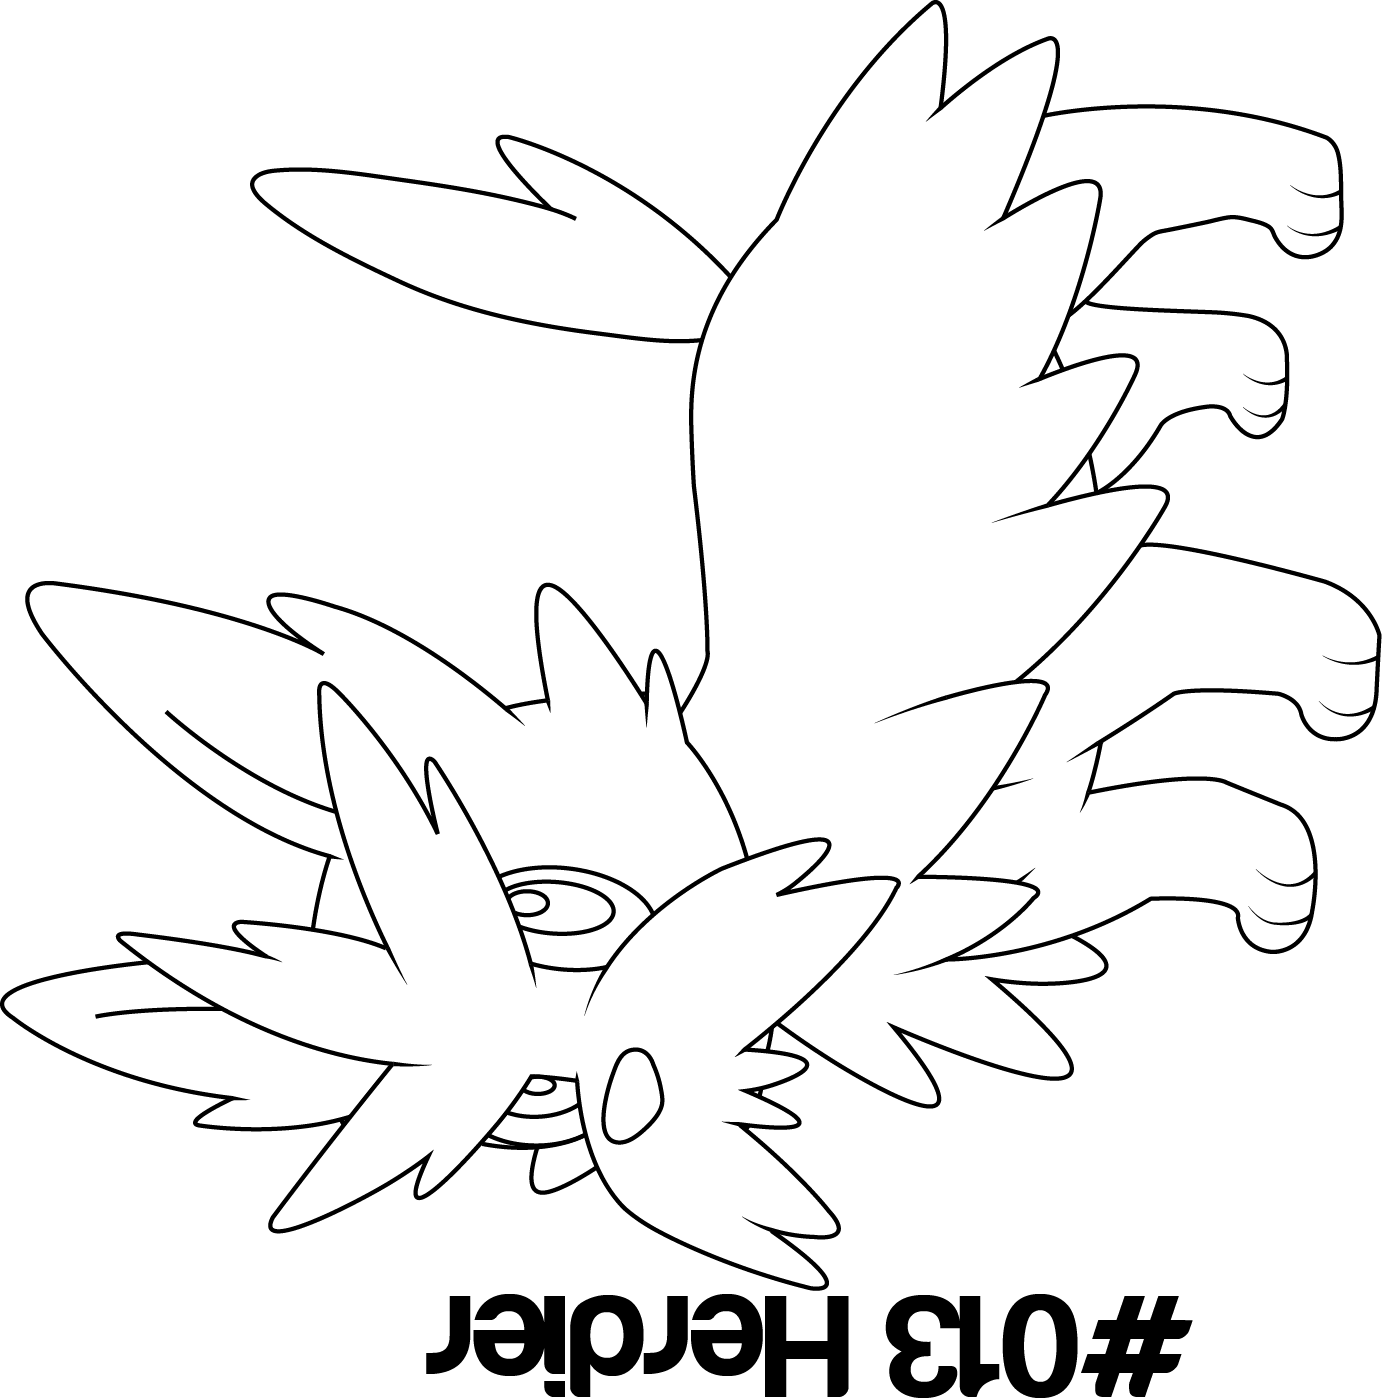 Herdier pokemon coloring pages - Herdier Pokemon Coloring Pages Gallery